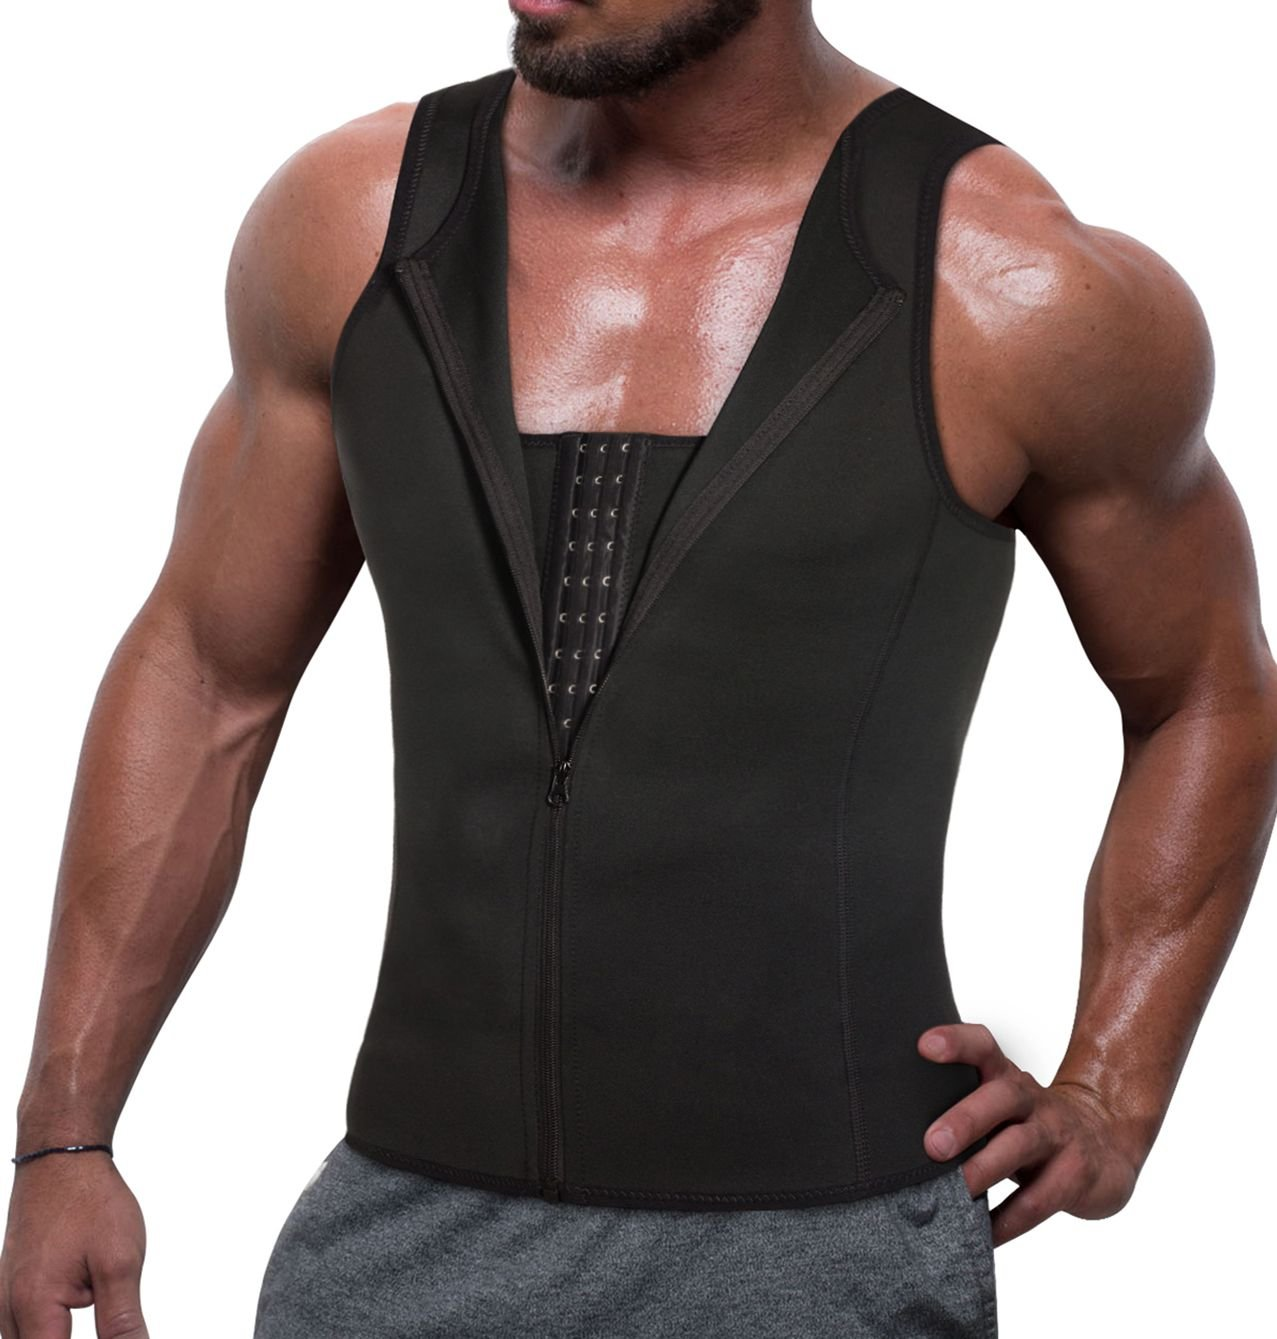 Men Chest Compression Tank Top Shirt Tight Body Shaper for Tummy Slimming Abs Trim Girdle Vest (2XL, Black)